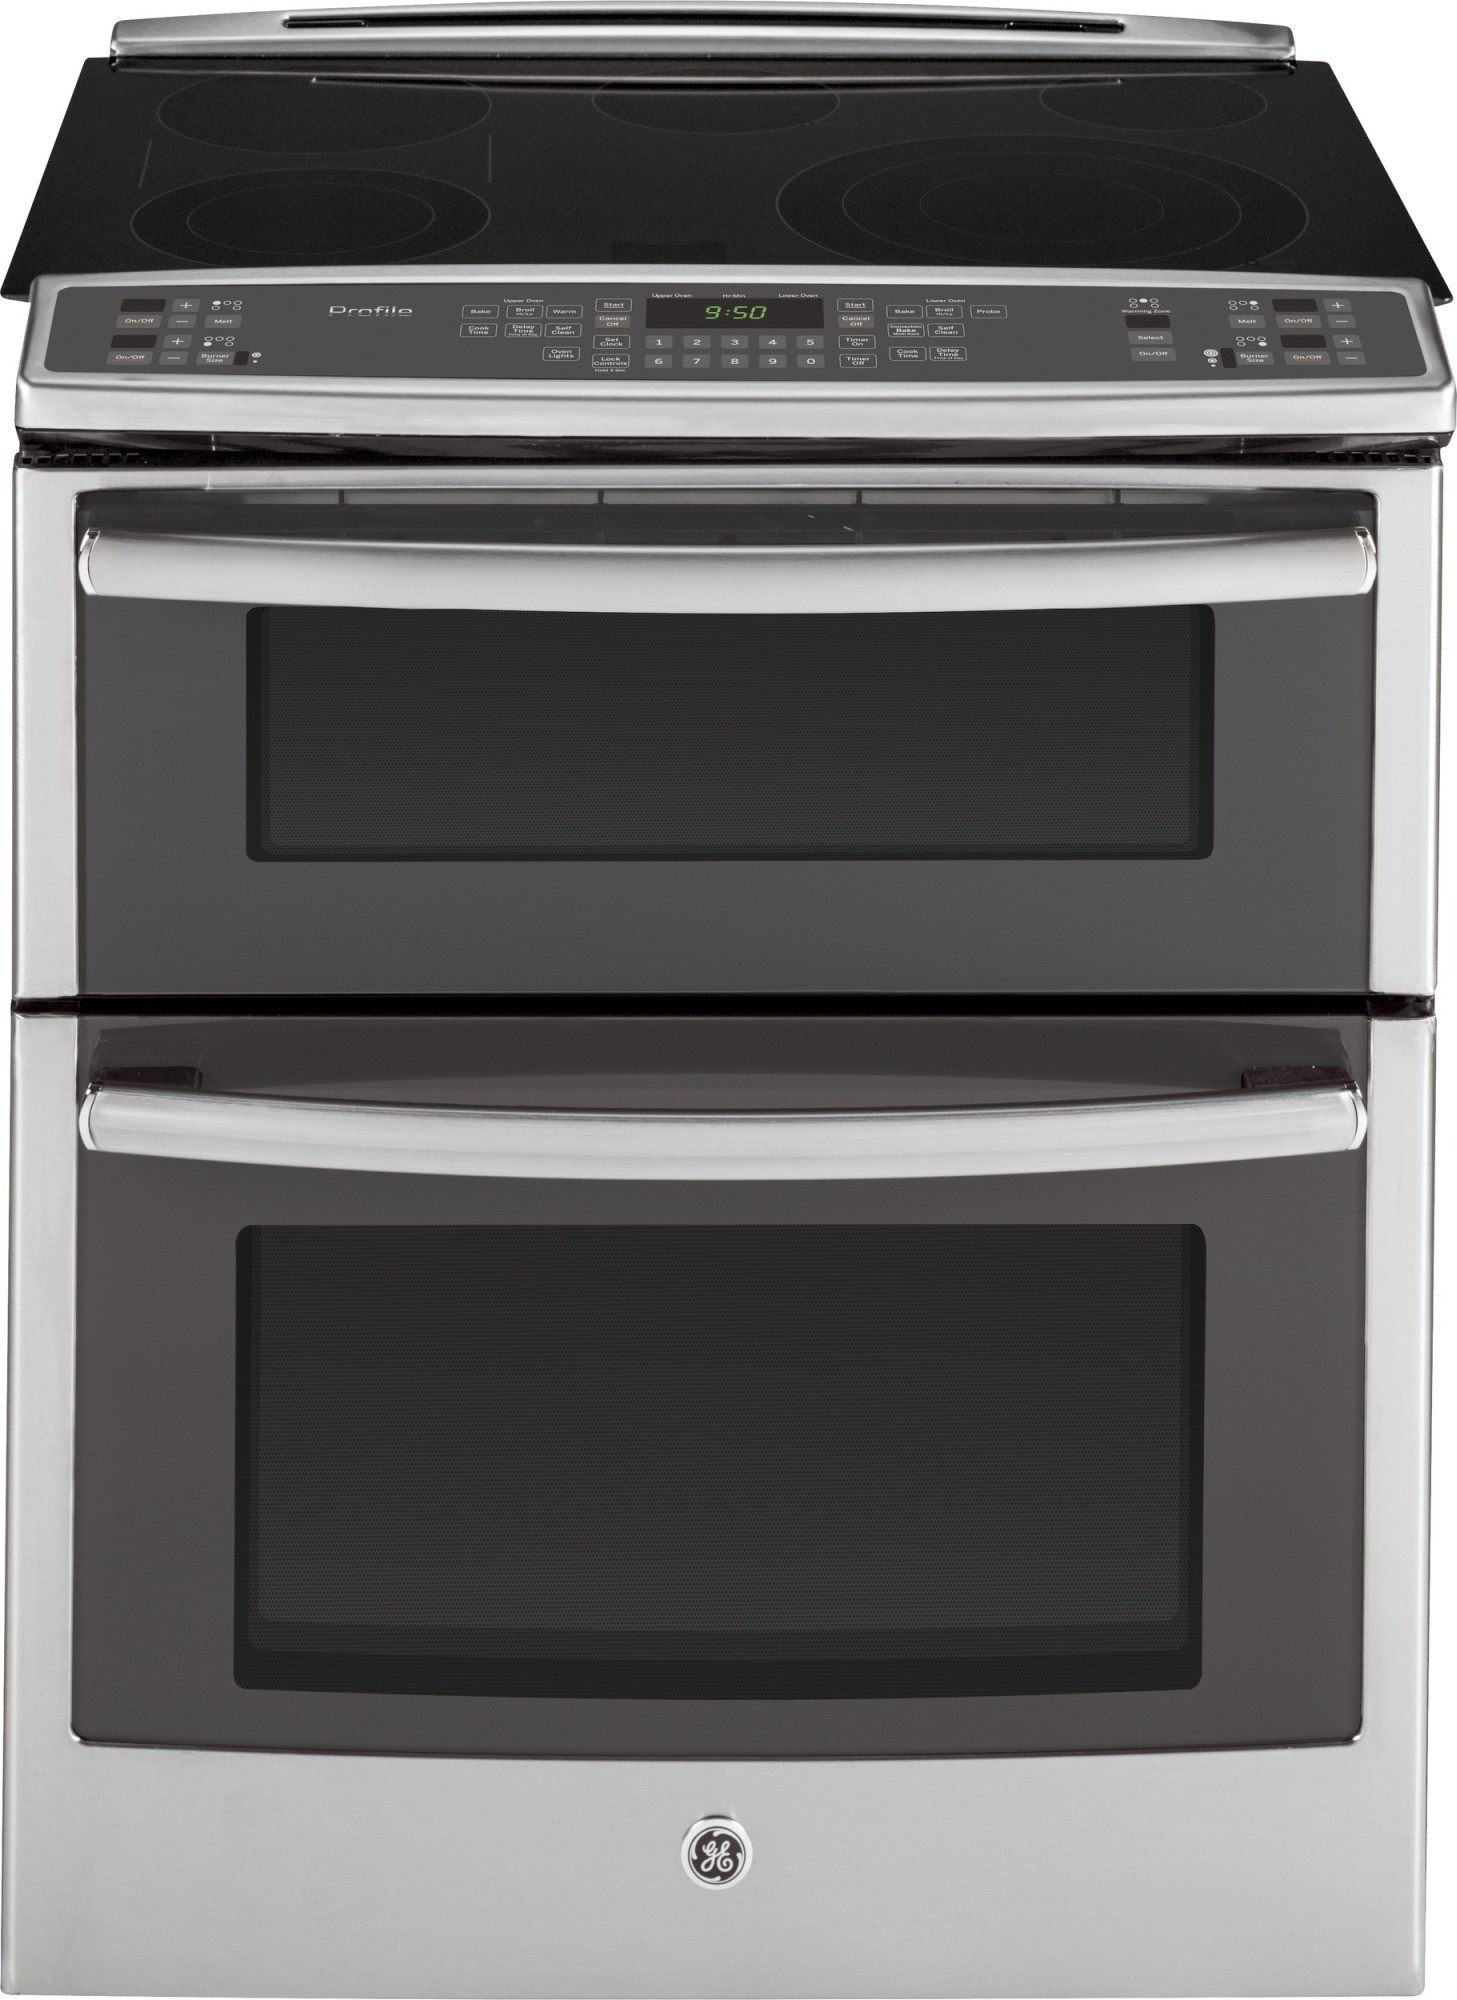 ps950sfss ge profile 30 slide in double oven electric range convection stainless steel. Black Bedroom Furniture Sets. Home Design Ideas